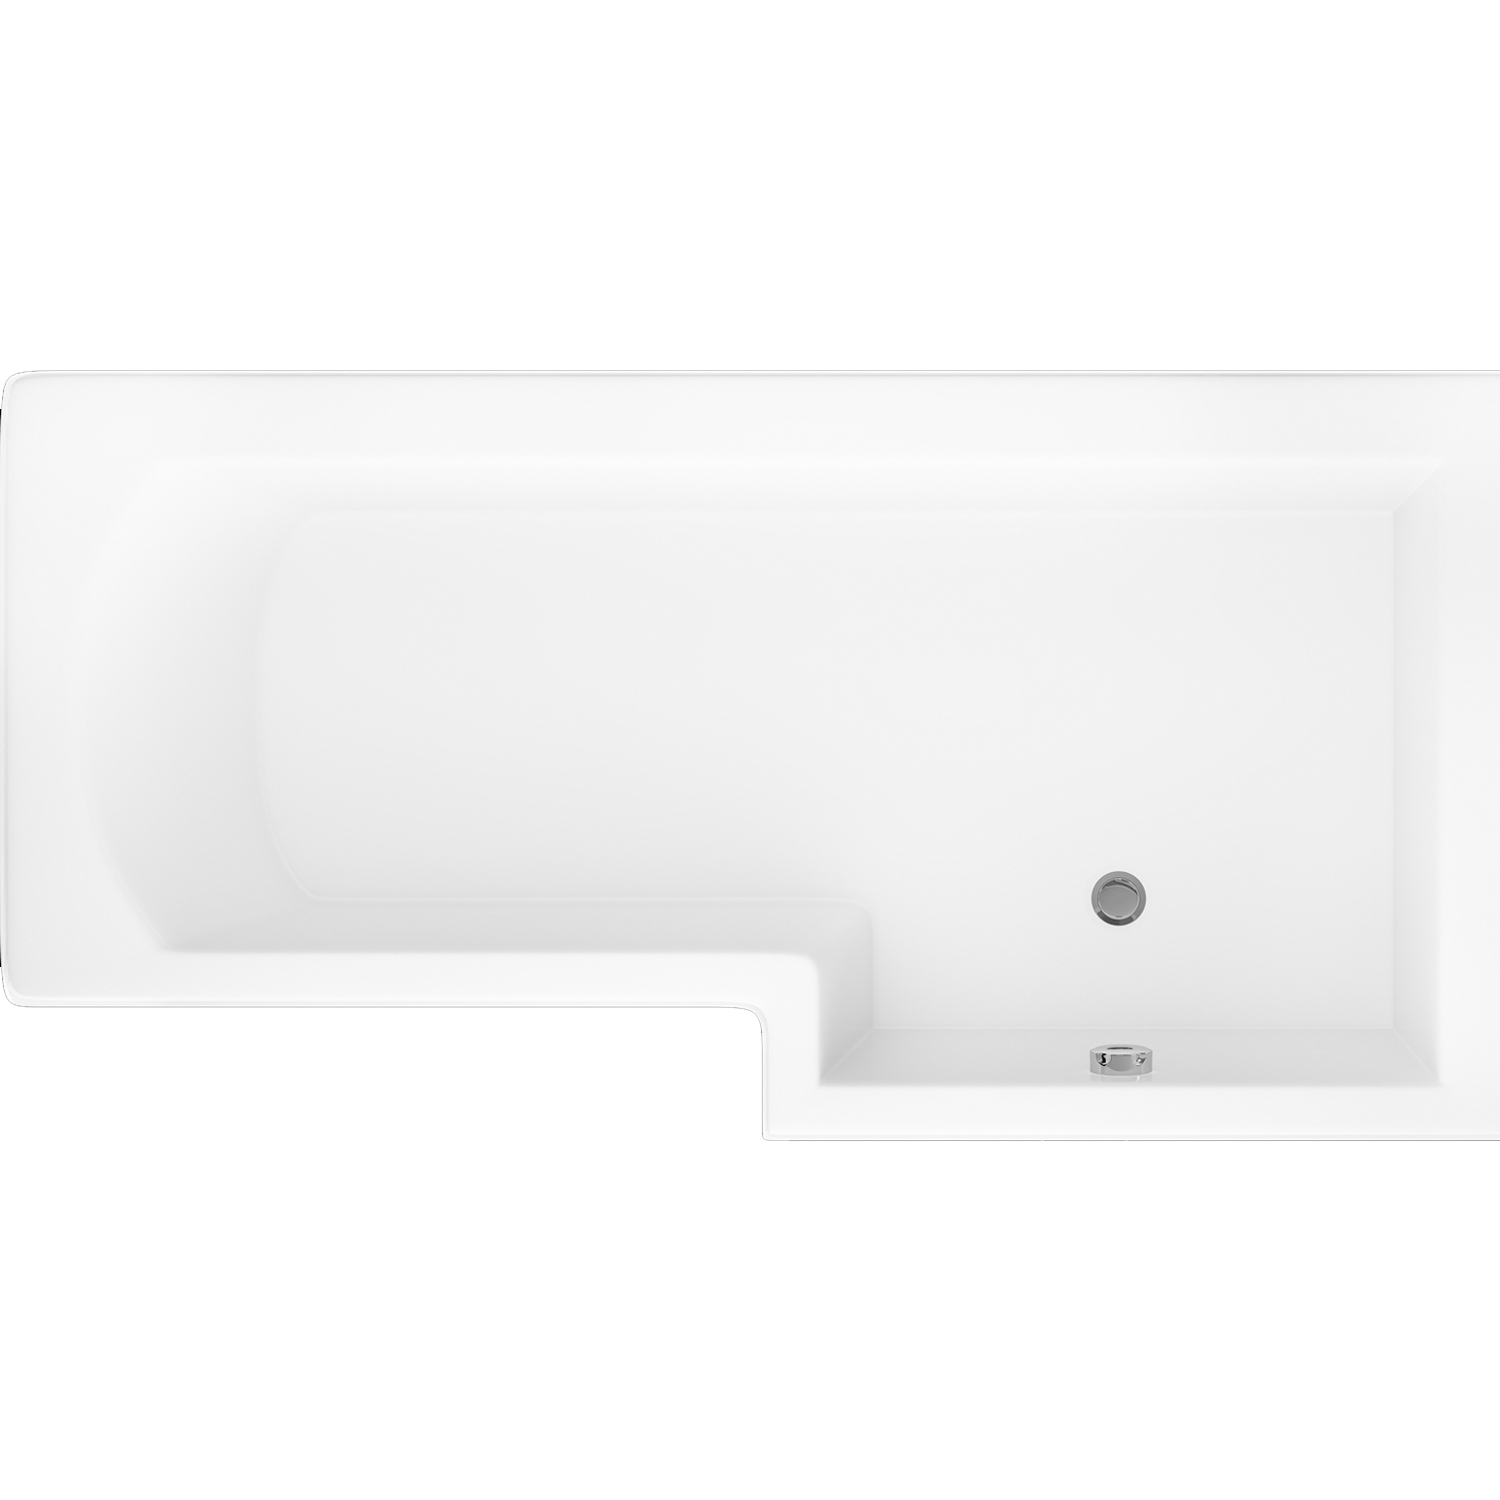 Cali Halle L-Shaped Shower Bath 1500mm x 700mm/850mm Right Handed-0